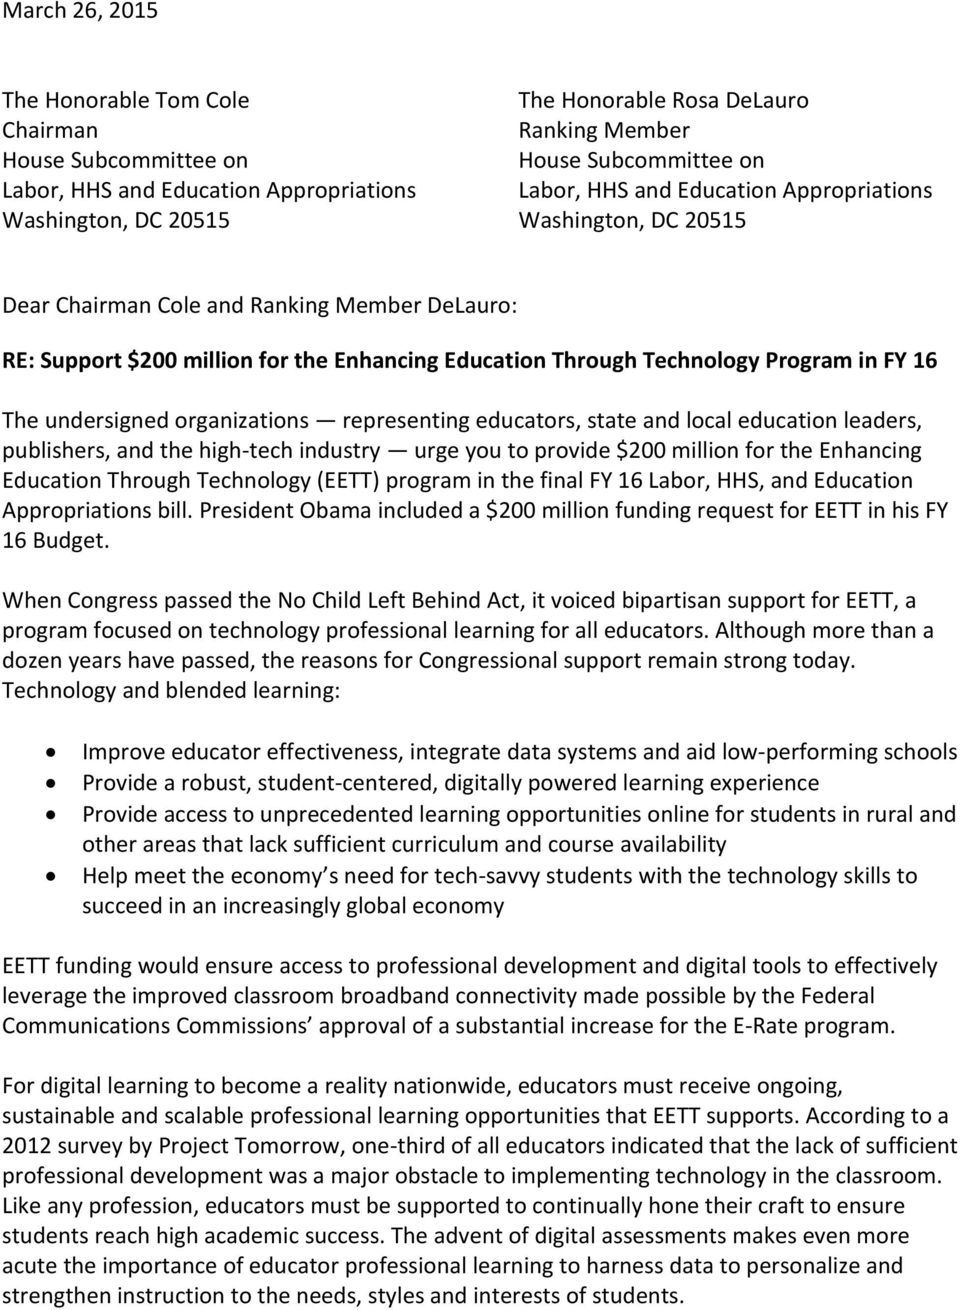 undersigned organizations representing educators, state and local education leaders, publishers, and the high tech industry urge you to provide $200 million for the Enhancing Education Through